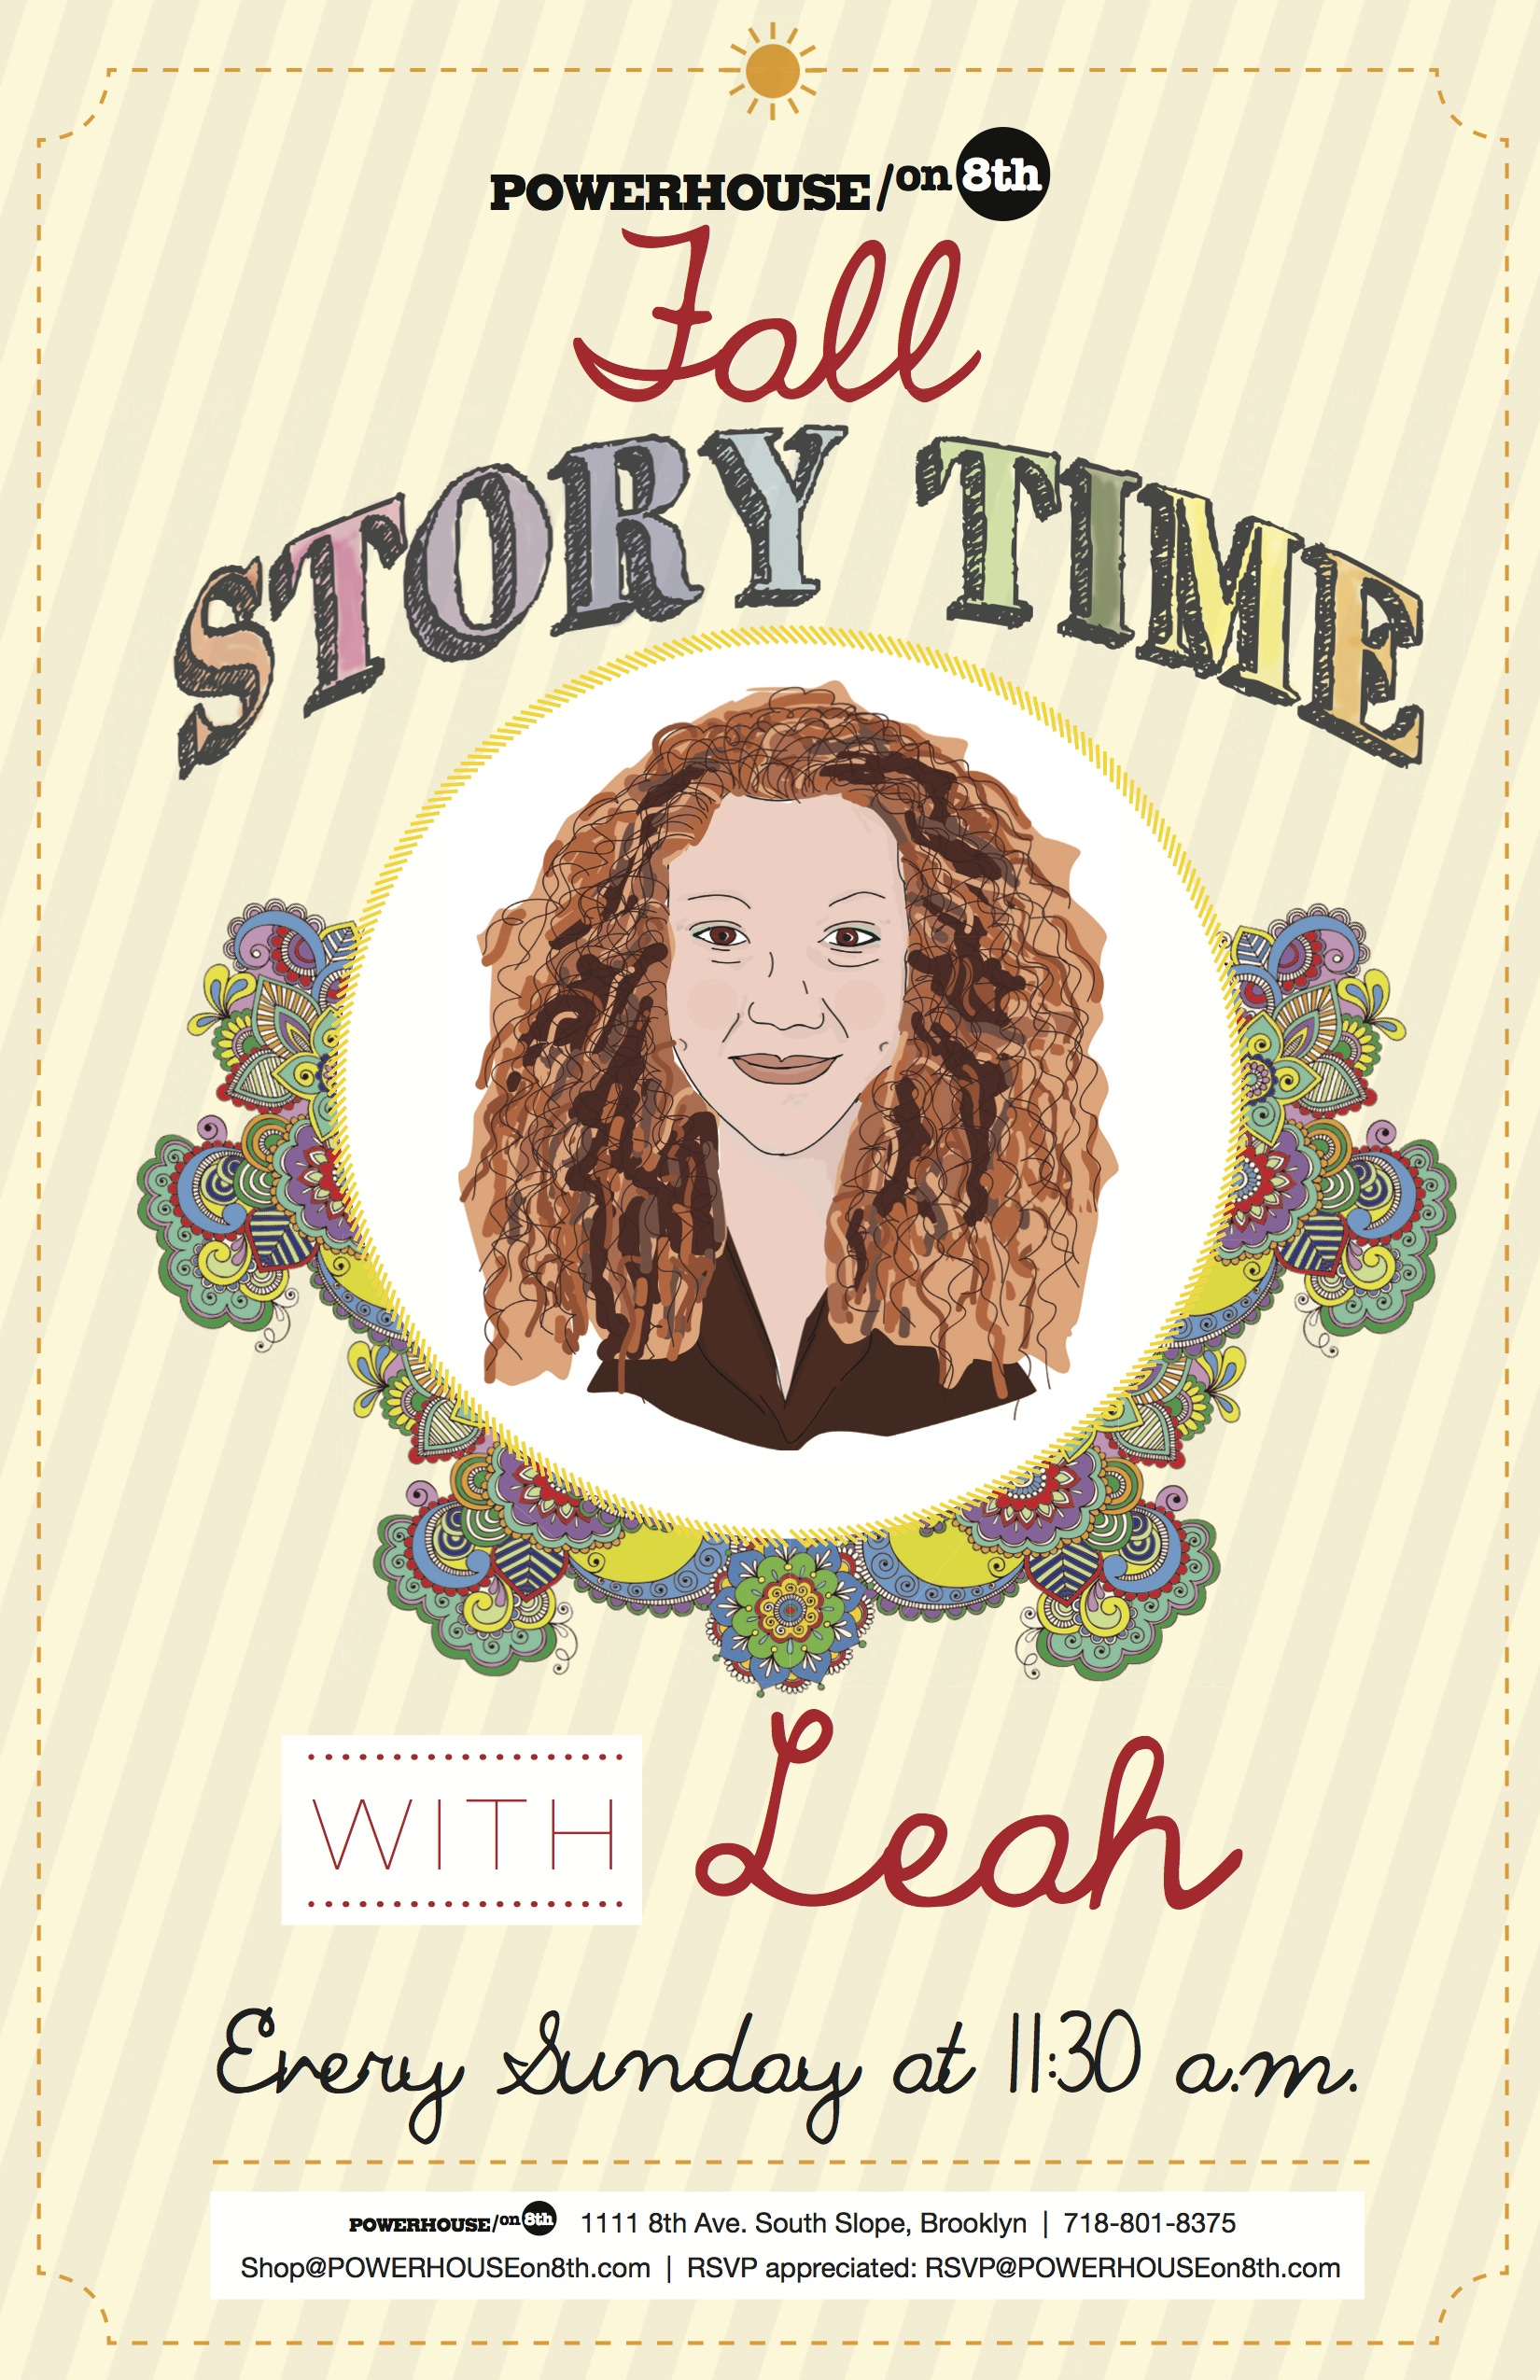 Story Time with Leah